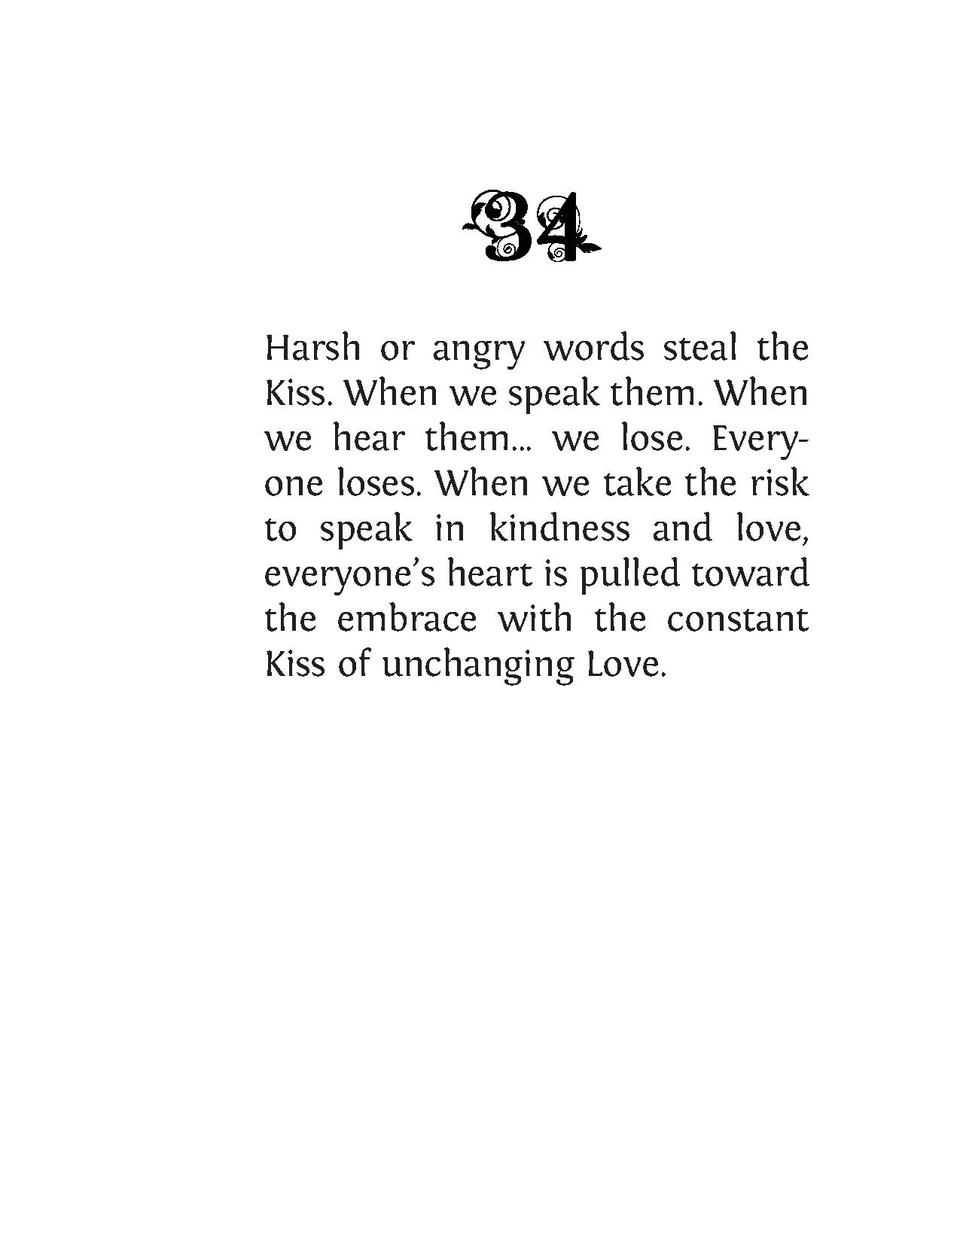 Harsh or angry words steal the Kiss. When we speak them. When we hear them... we lose. Everyone loses. When we take the ri...